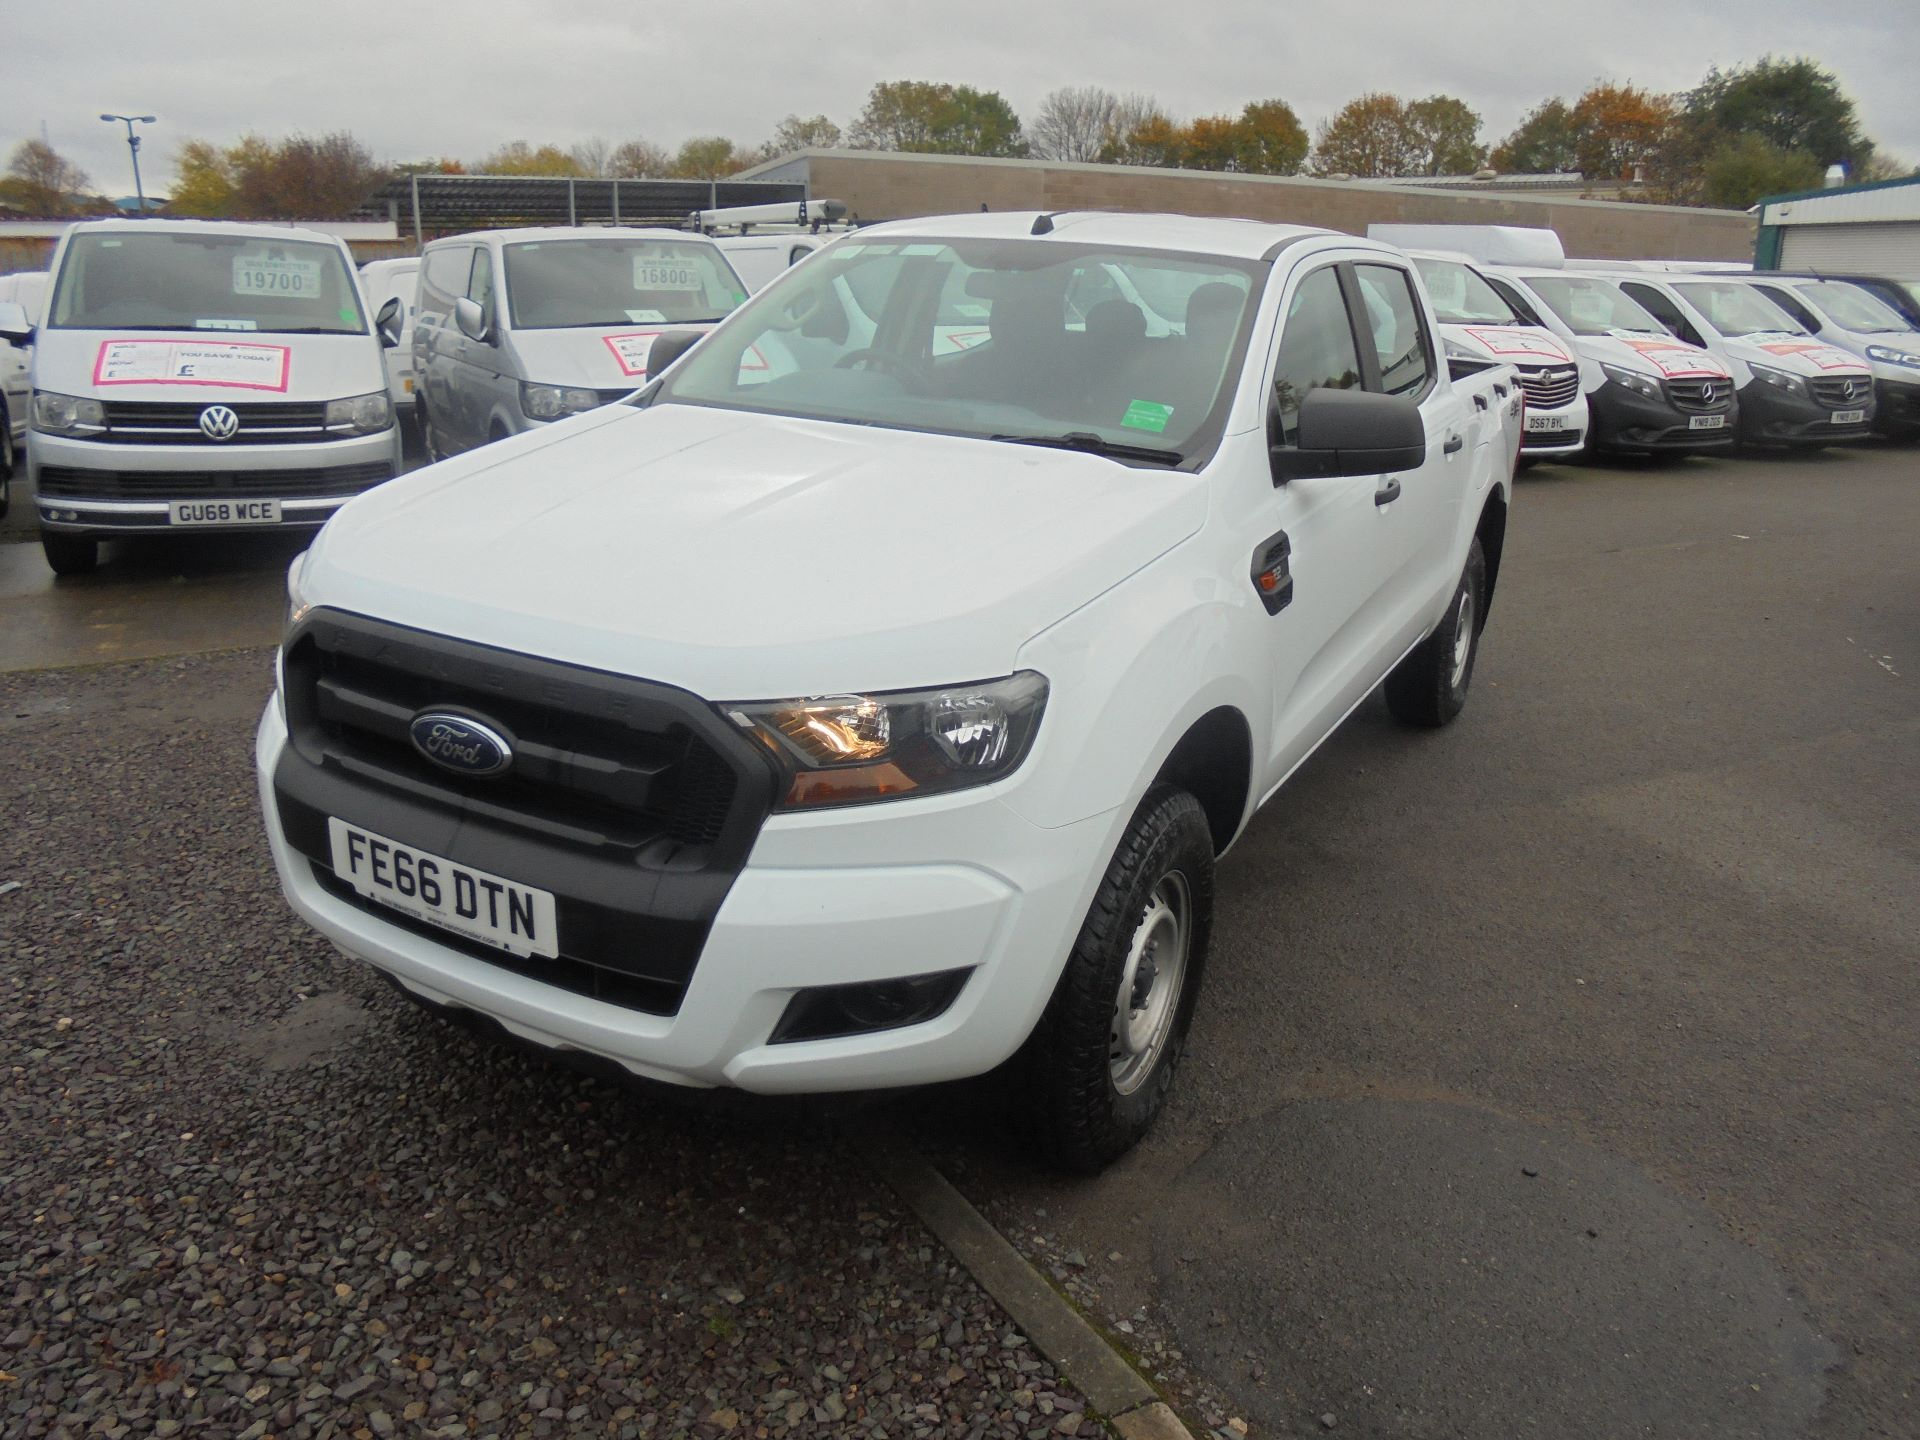 2016 Ford Ranger PICKUP 4X4 XL 2.2 TDCI D/C 160PS EURO 6 (FE66DTN) Image 8